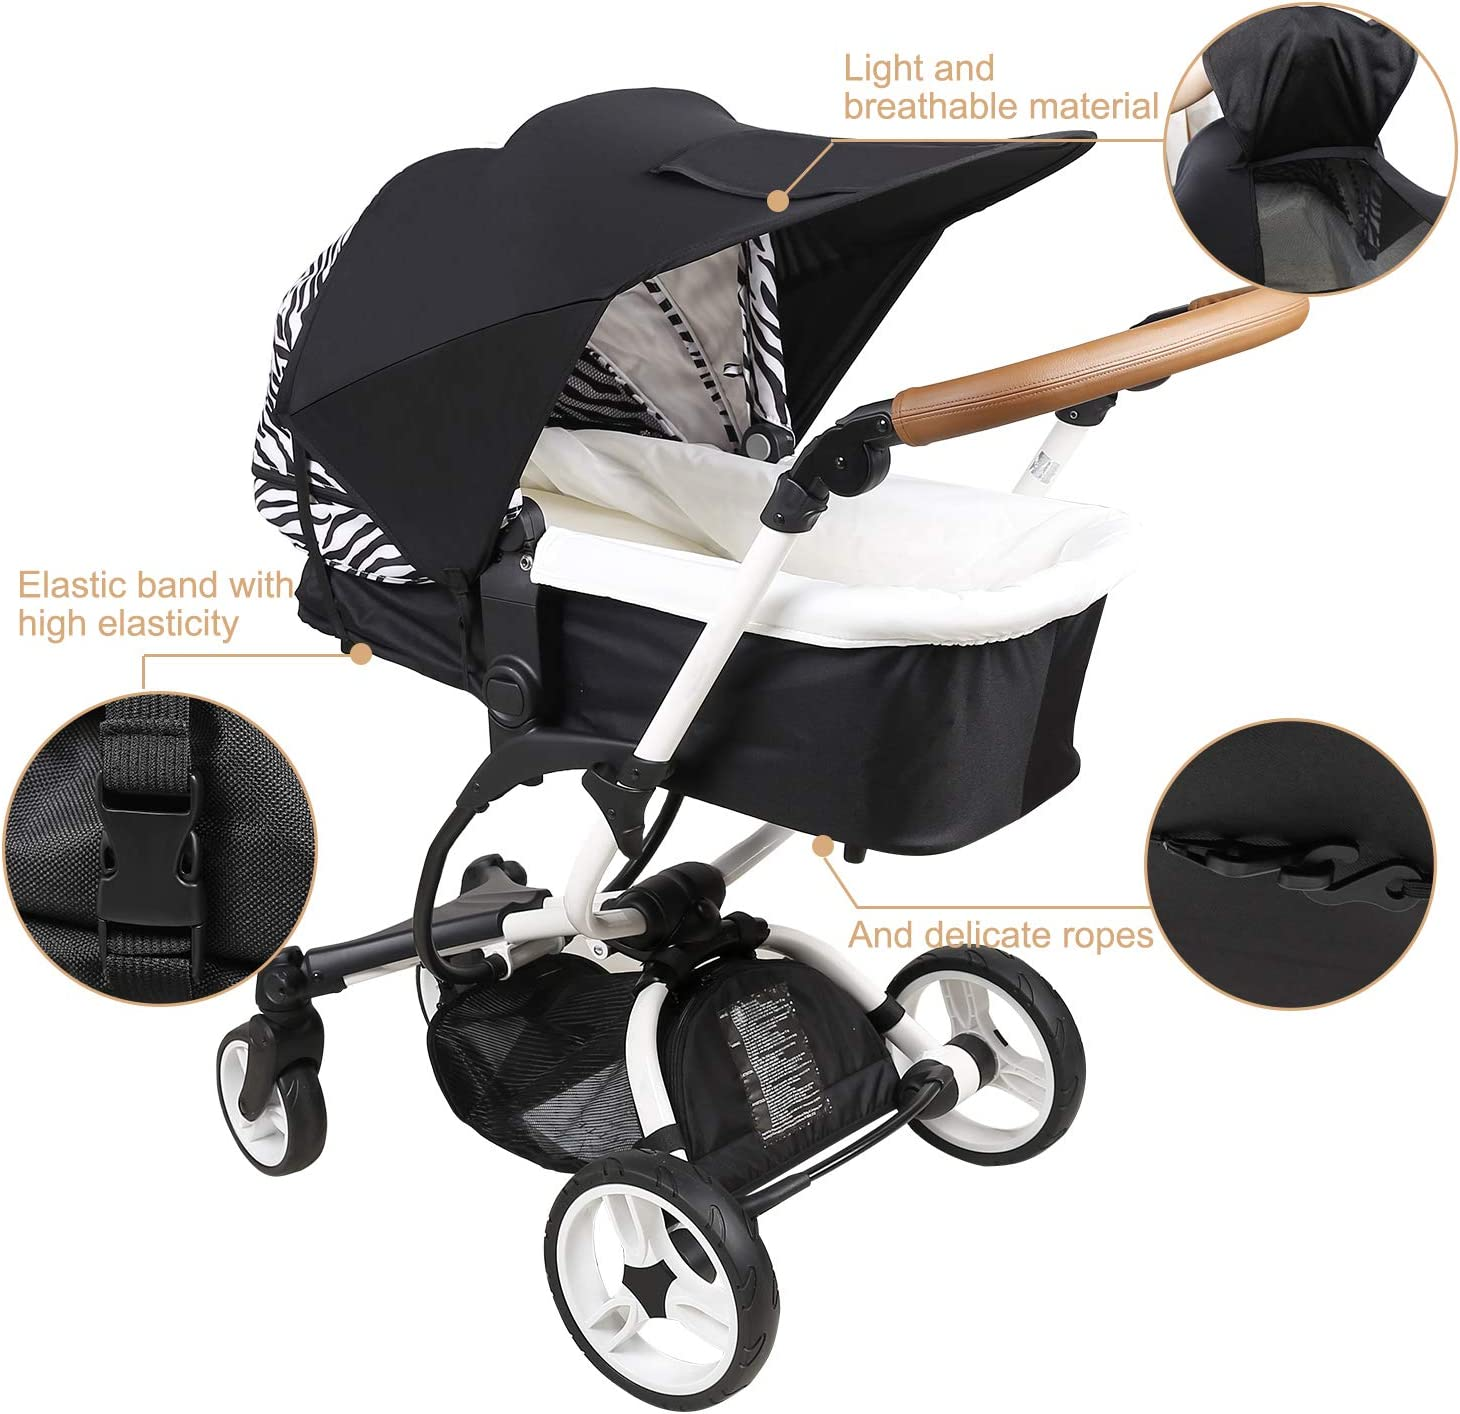 Sunshade for Stroller Sun Cover with Viewing Window Universal Sun Shade for Pushchair Buggy Carrycots ZJ Right Pram Cover Black Sun Cover for Pushchair Canopy with UV Protection 50